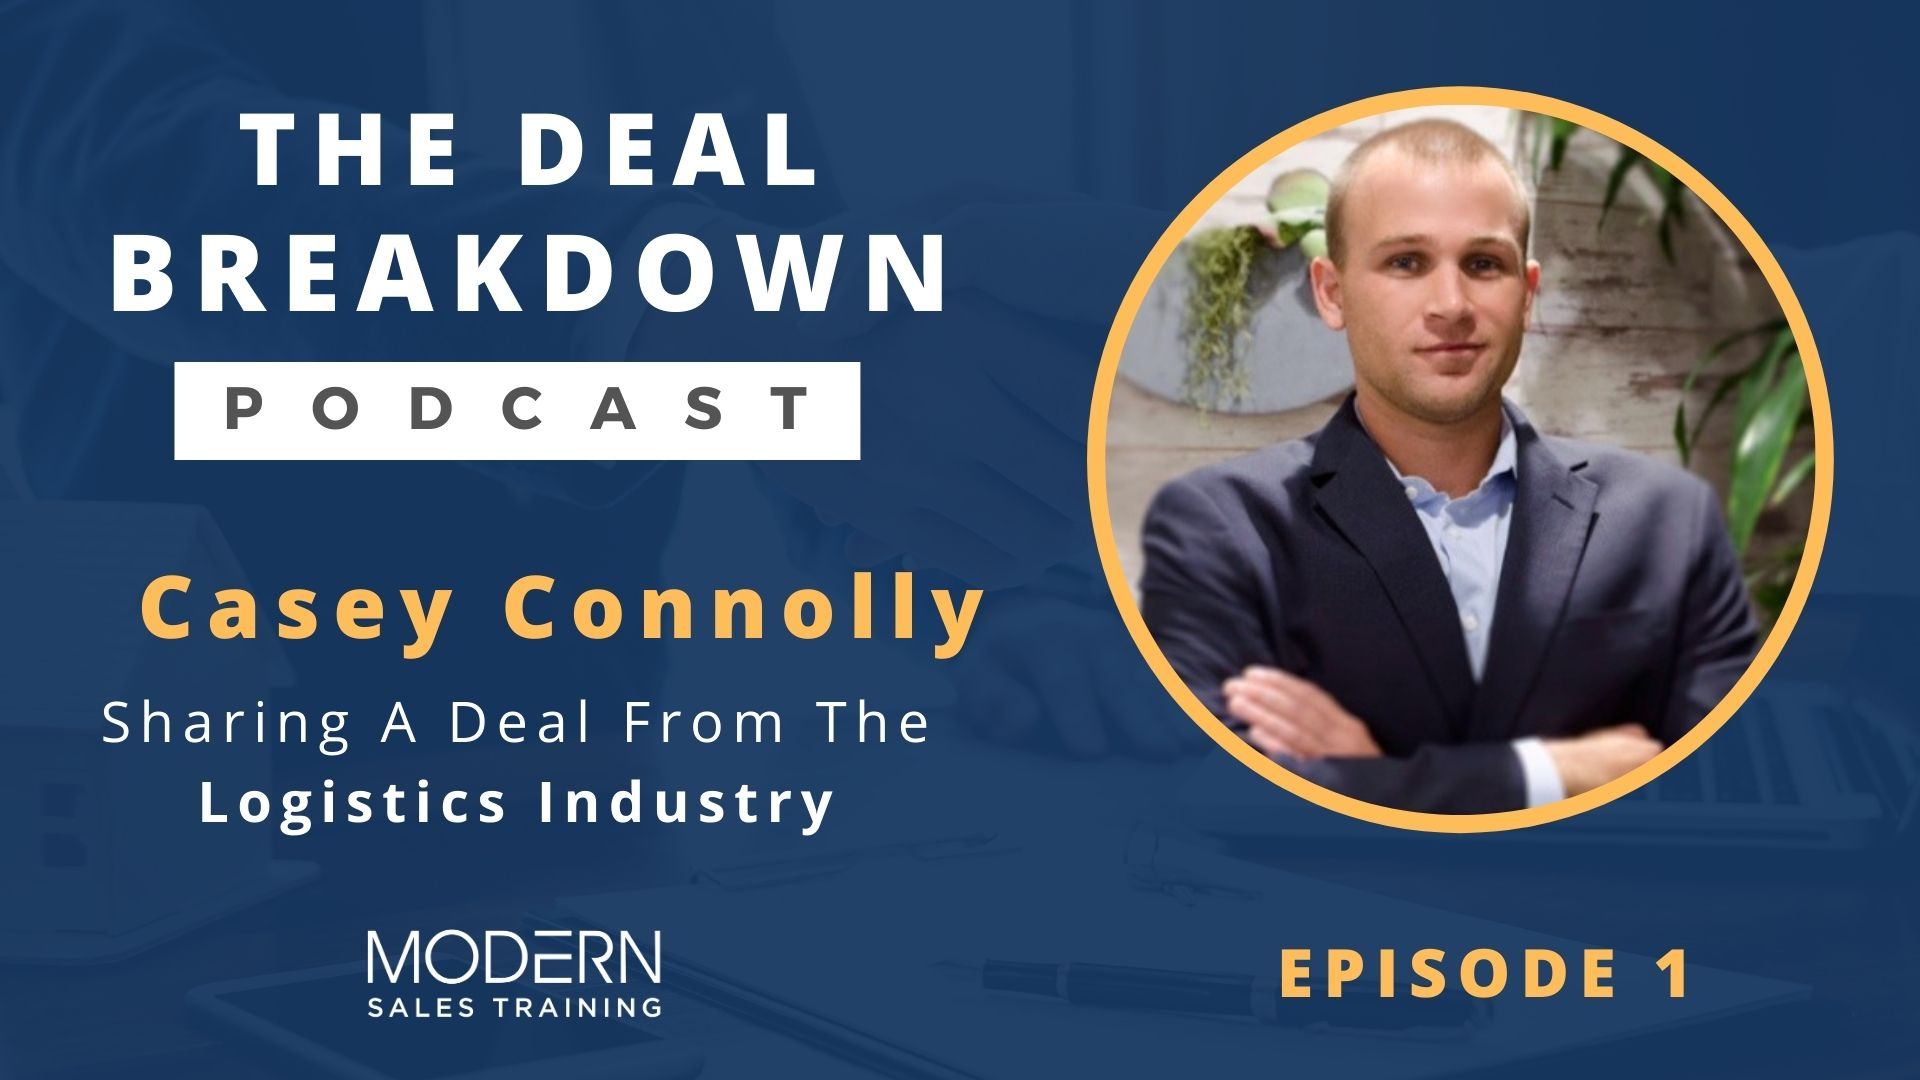 The-Deal-Breakdown-Podcast-Modern-Sales-Training-Casey-Connolly